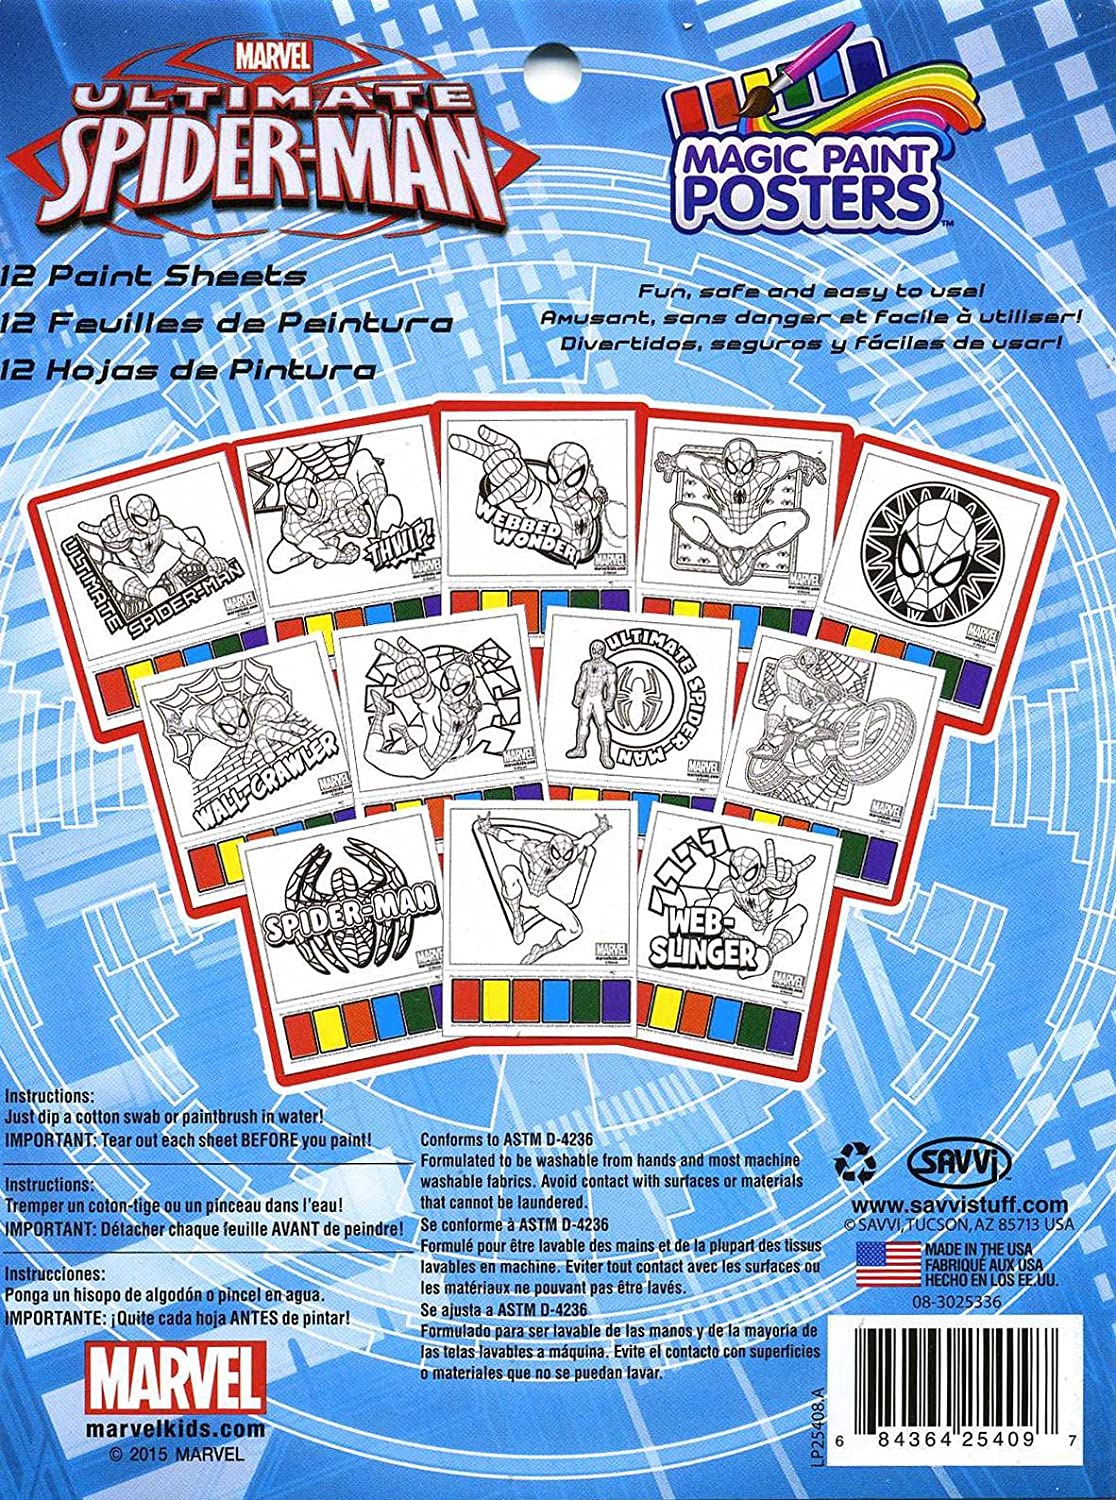 Spiderman Magic Paint Poster Book 12 Sheets